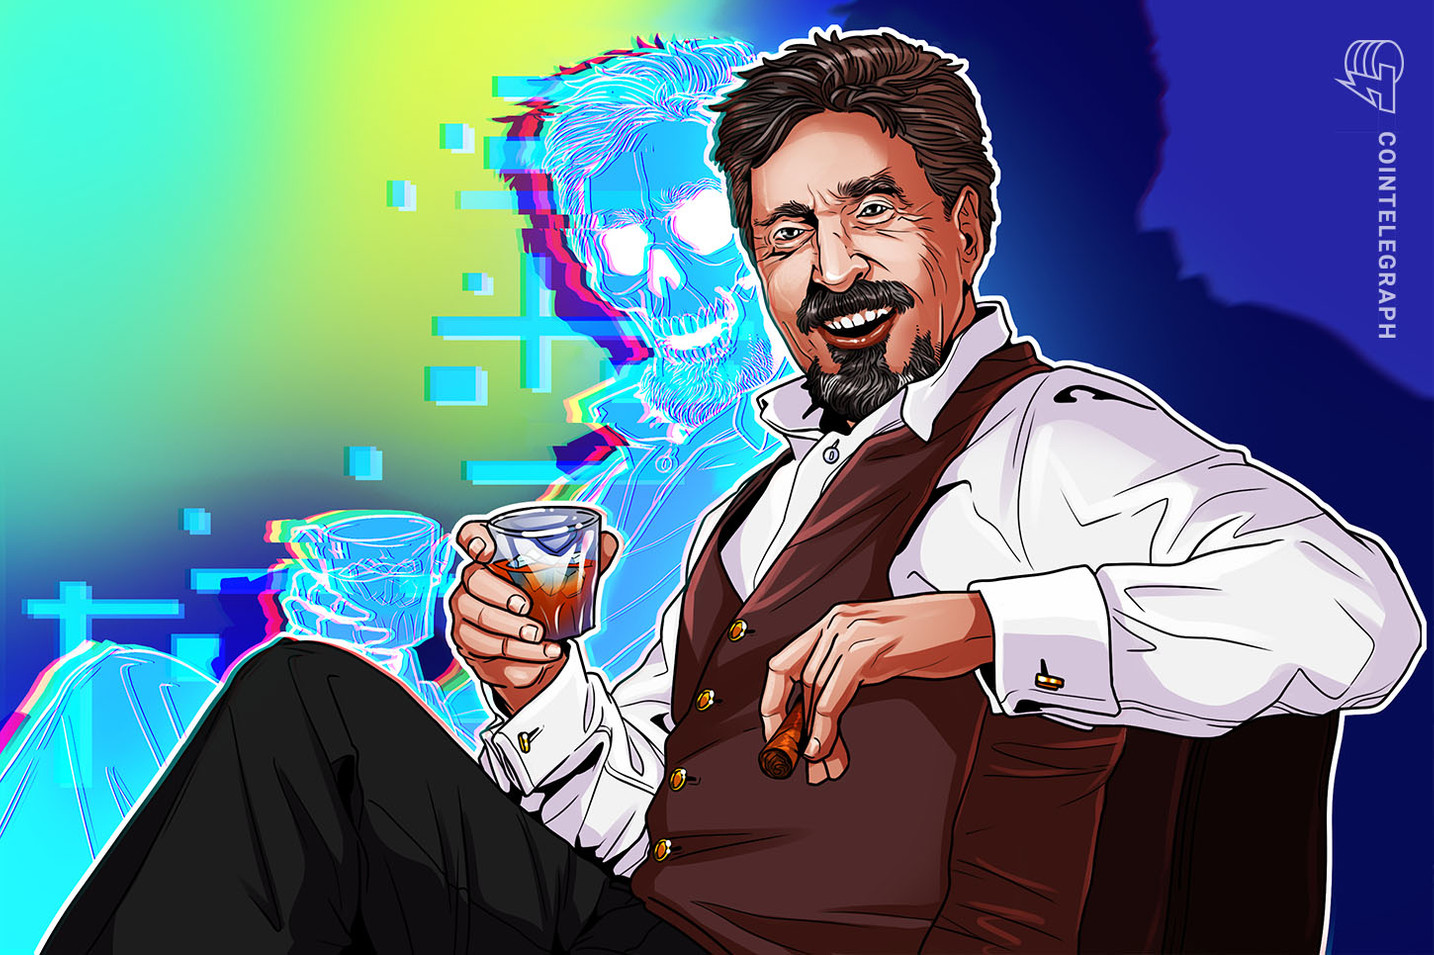 John McAfee's suicide reports raise disbelief, spark conspiracy theories